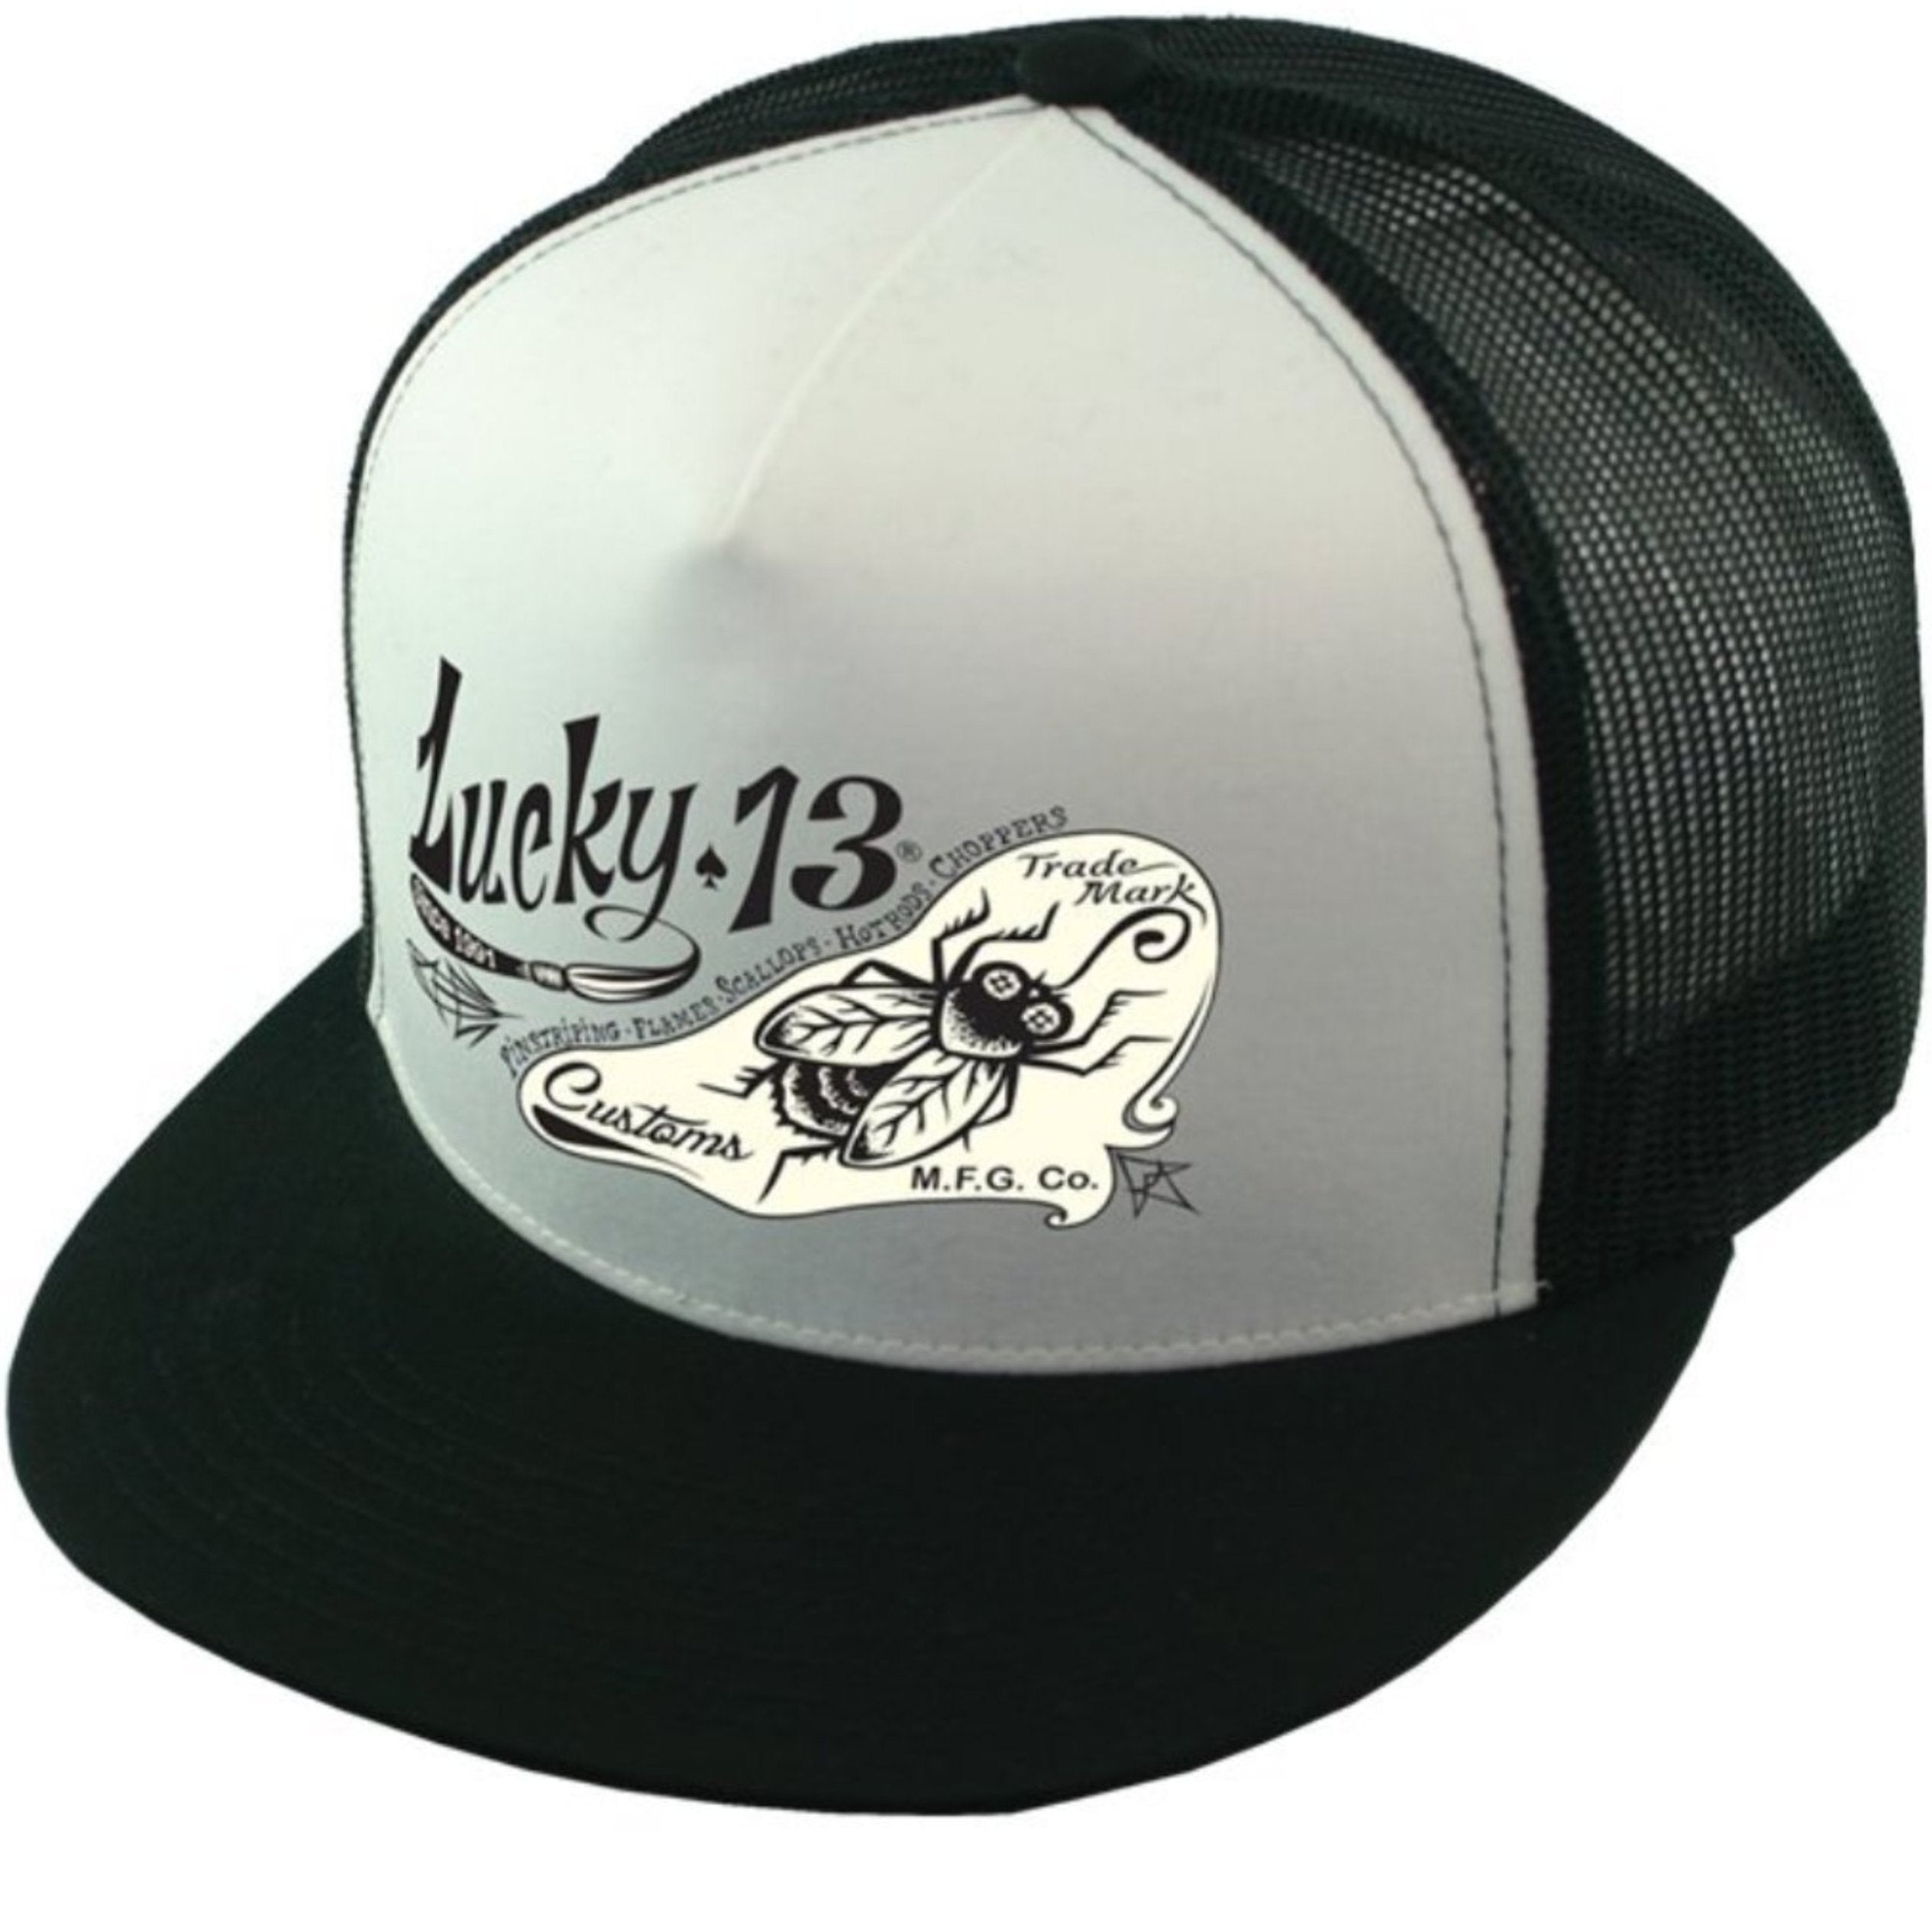 The PIN-FLY Cap - BLACK/WHITE